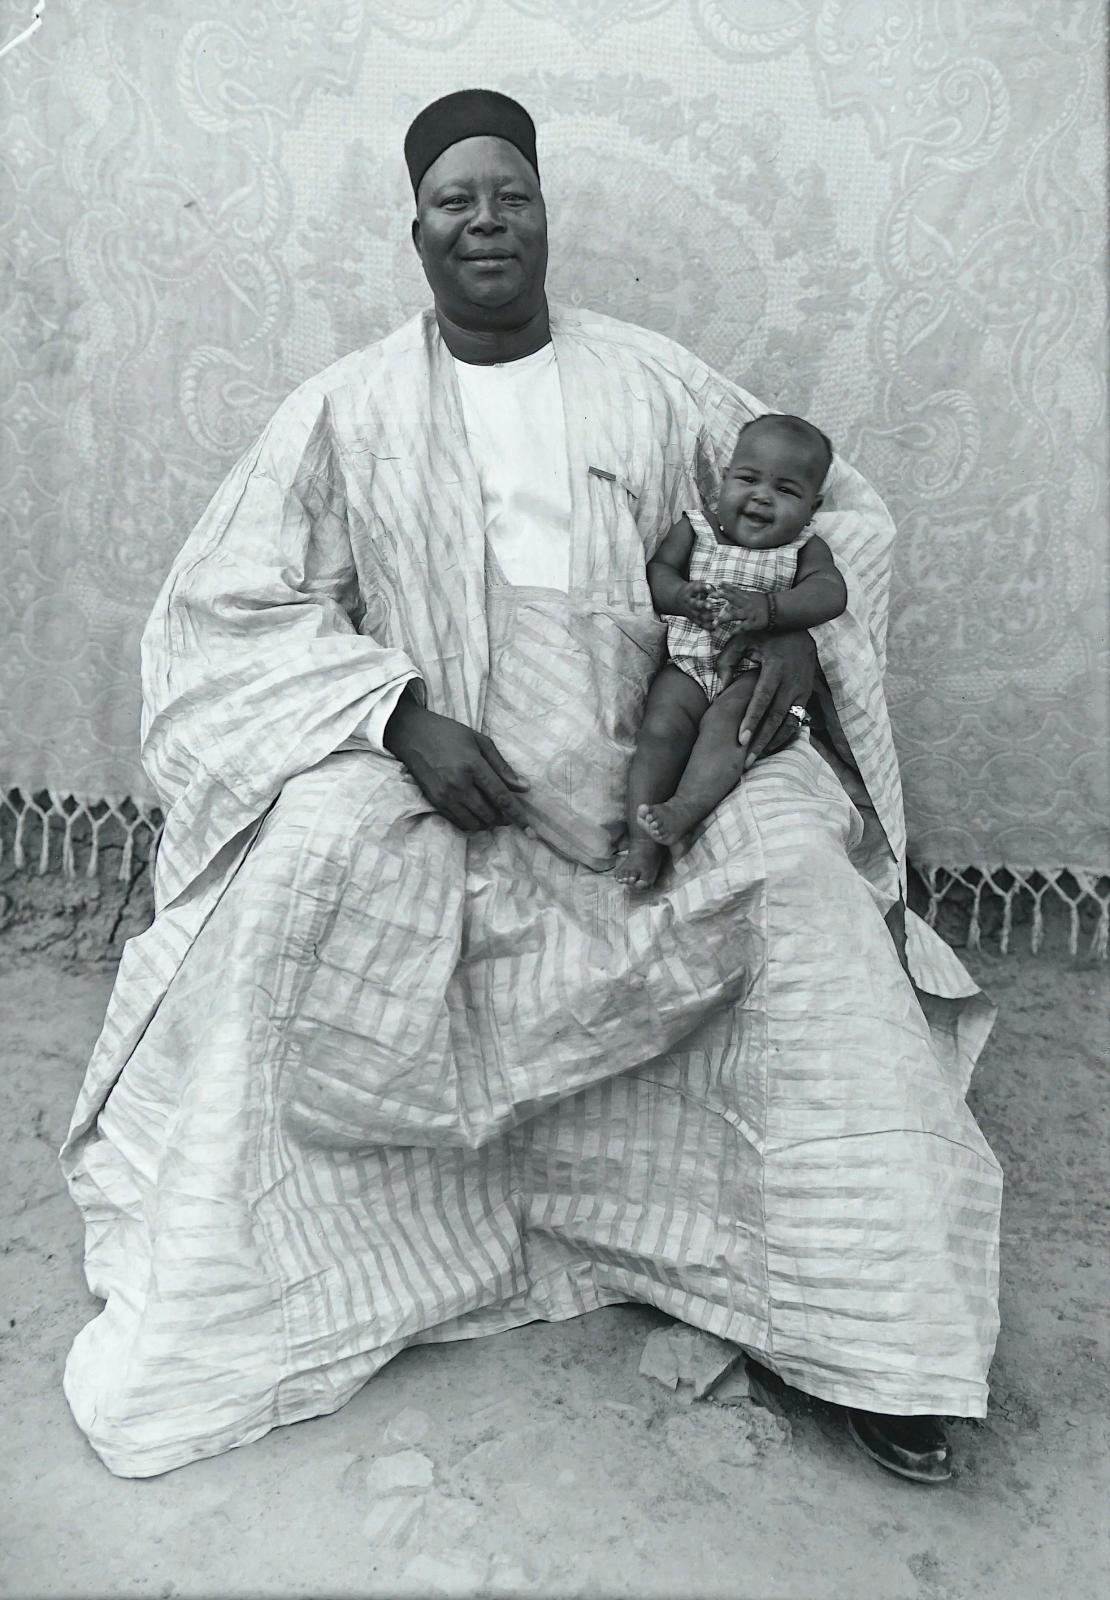 Seydou Keïta (1921-2001), Un juge et son petit-fils (A Judge and His Grandson), Bamako, 1949-1951, large silver print made by Philippe Gas